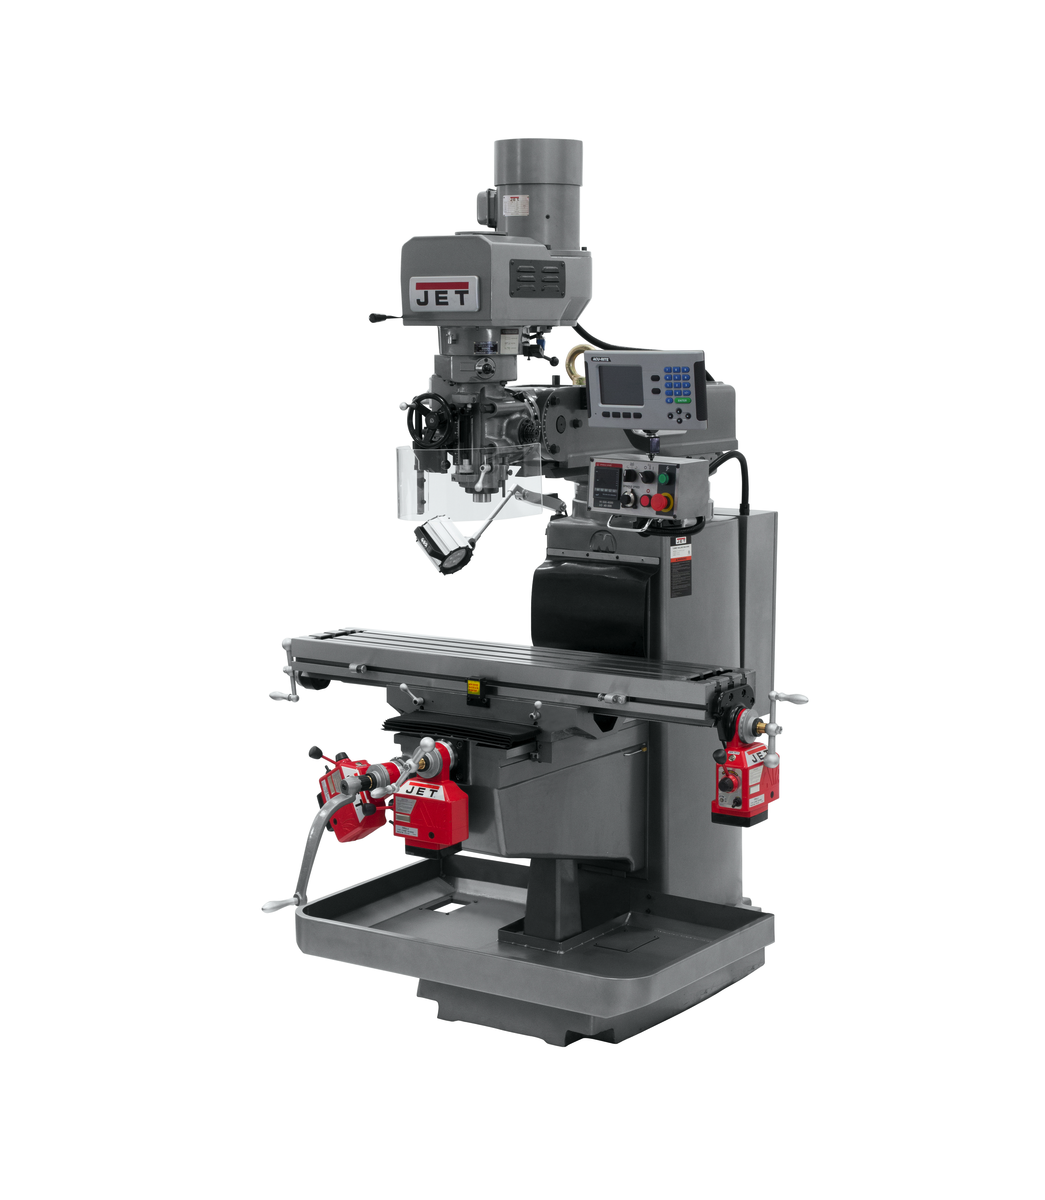 JTM-1050EVS2/230 Mill With 3-Axis Acu-Rite 203 DRO (Quill) With X, Y and Z-Axis Powerfeeds